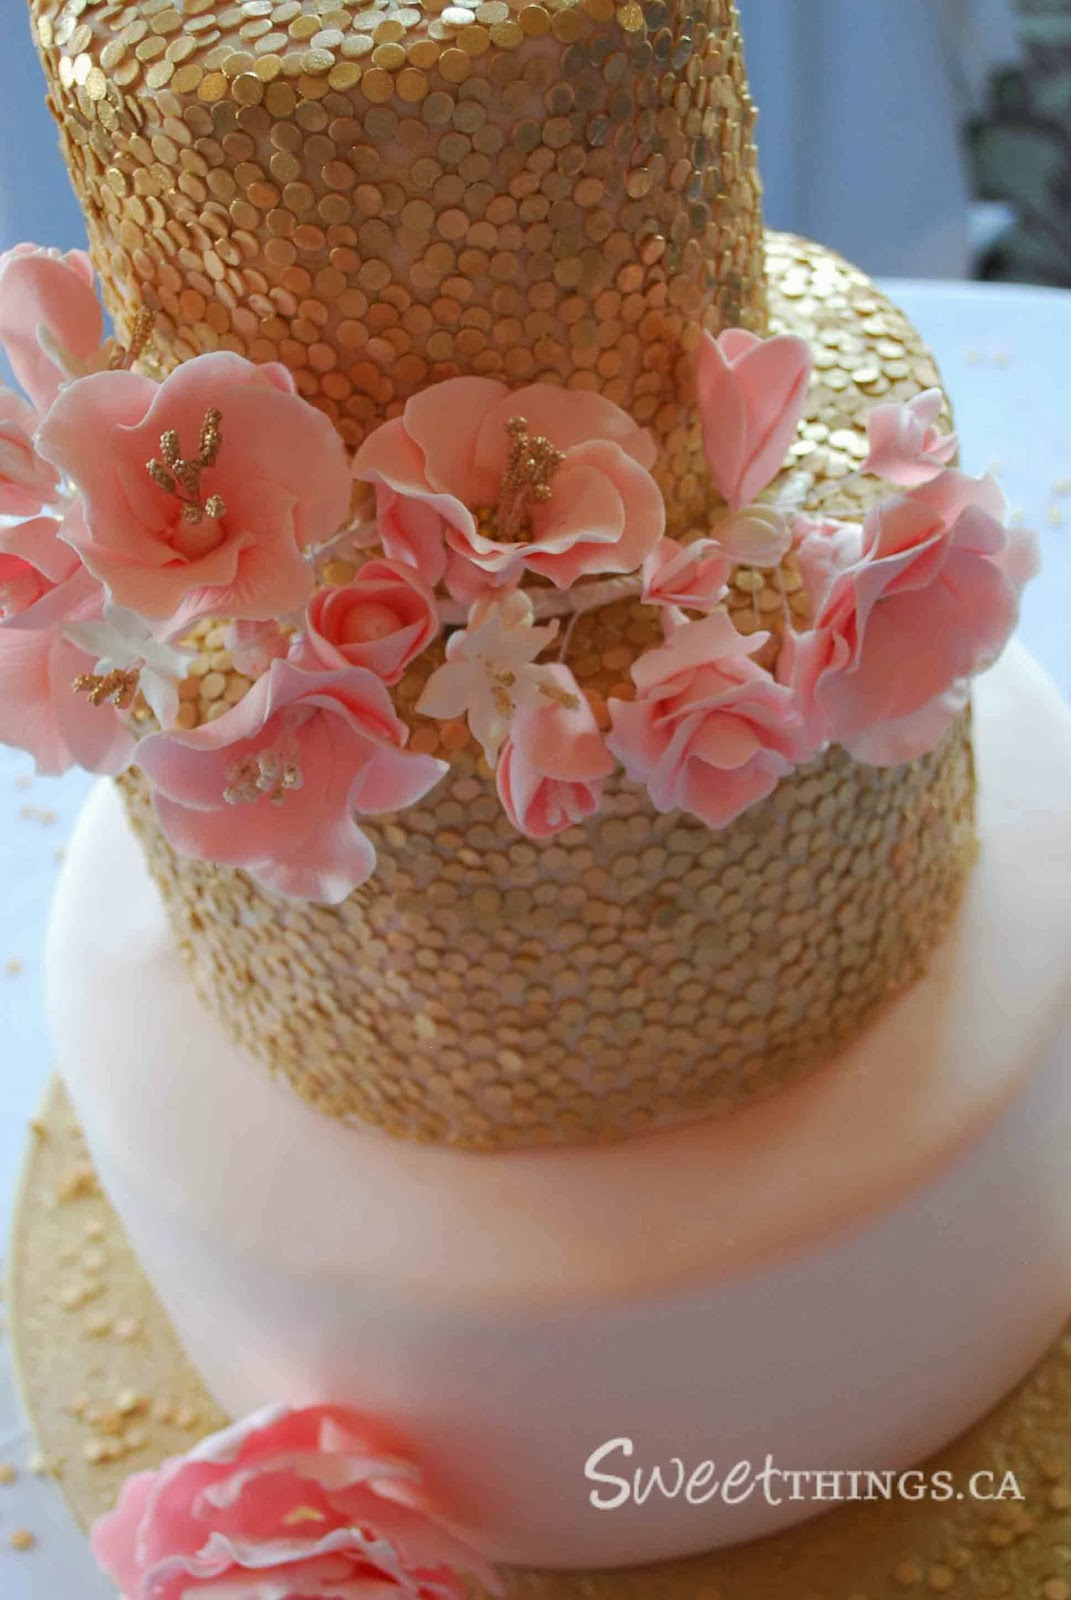 SweetThings Pink and Gold Wedding Cake